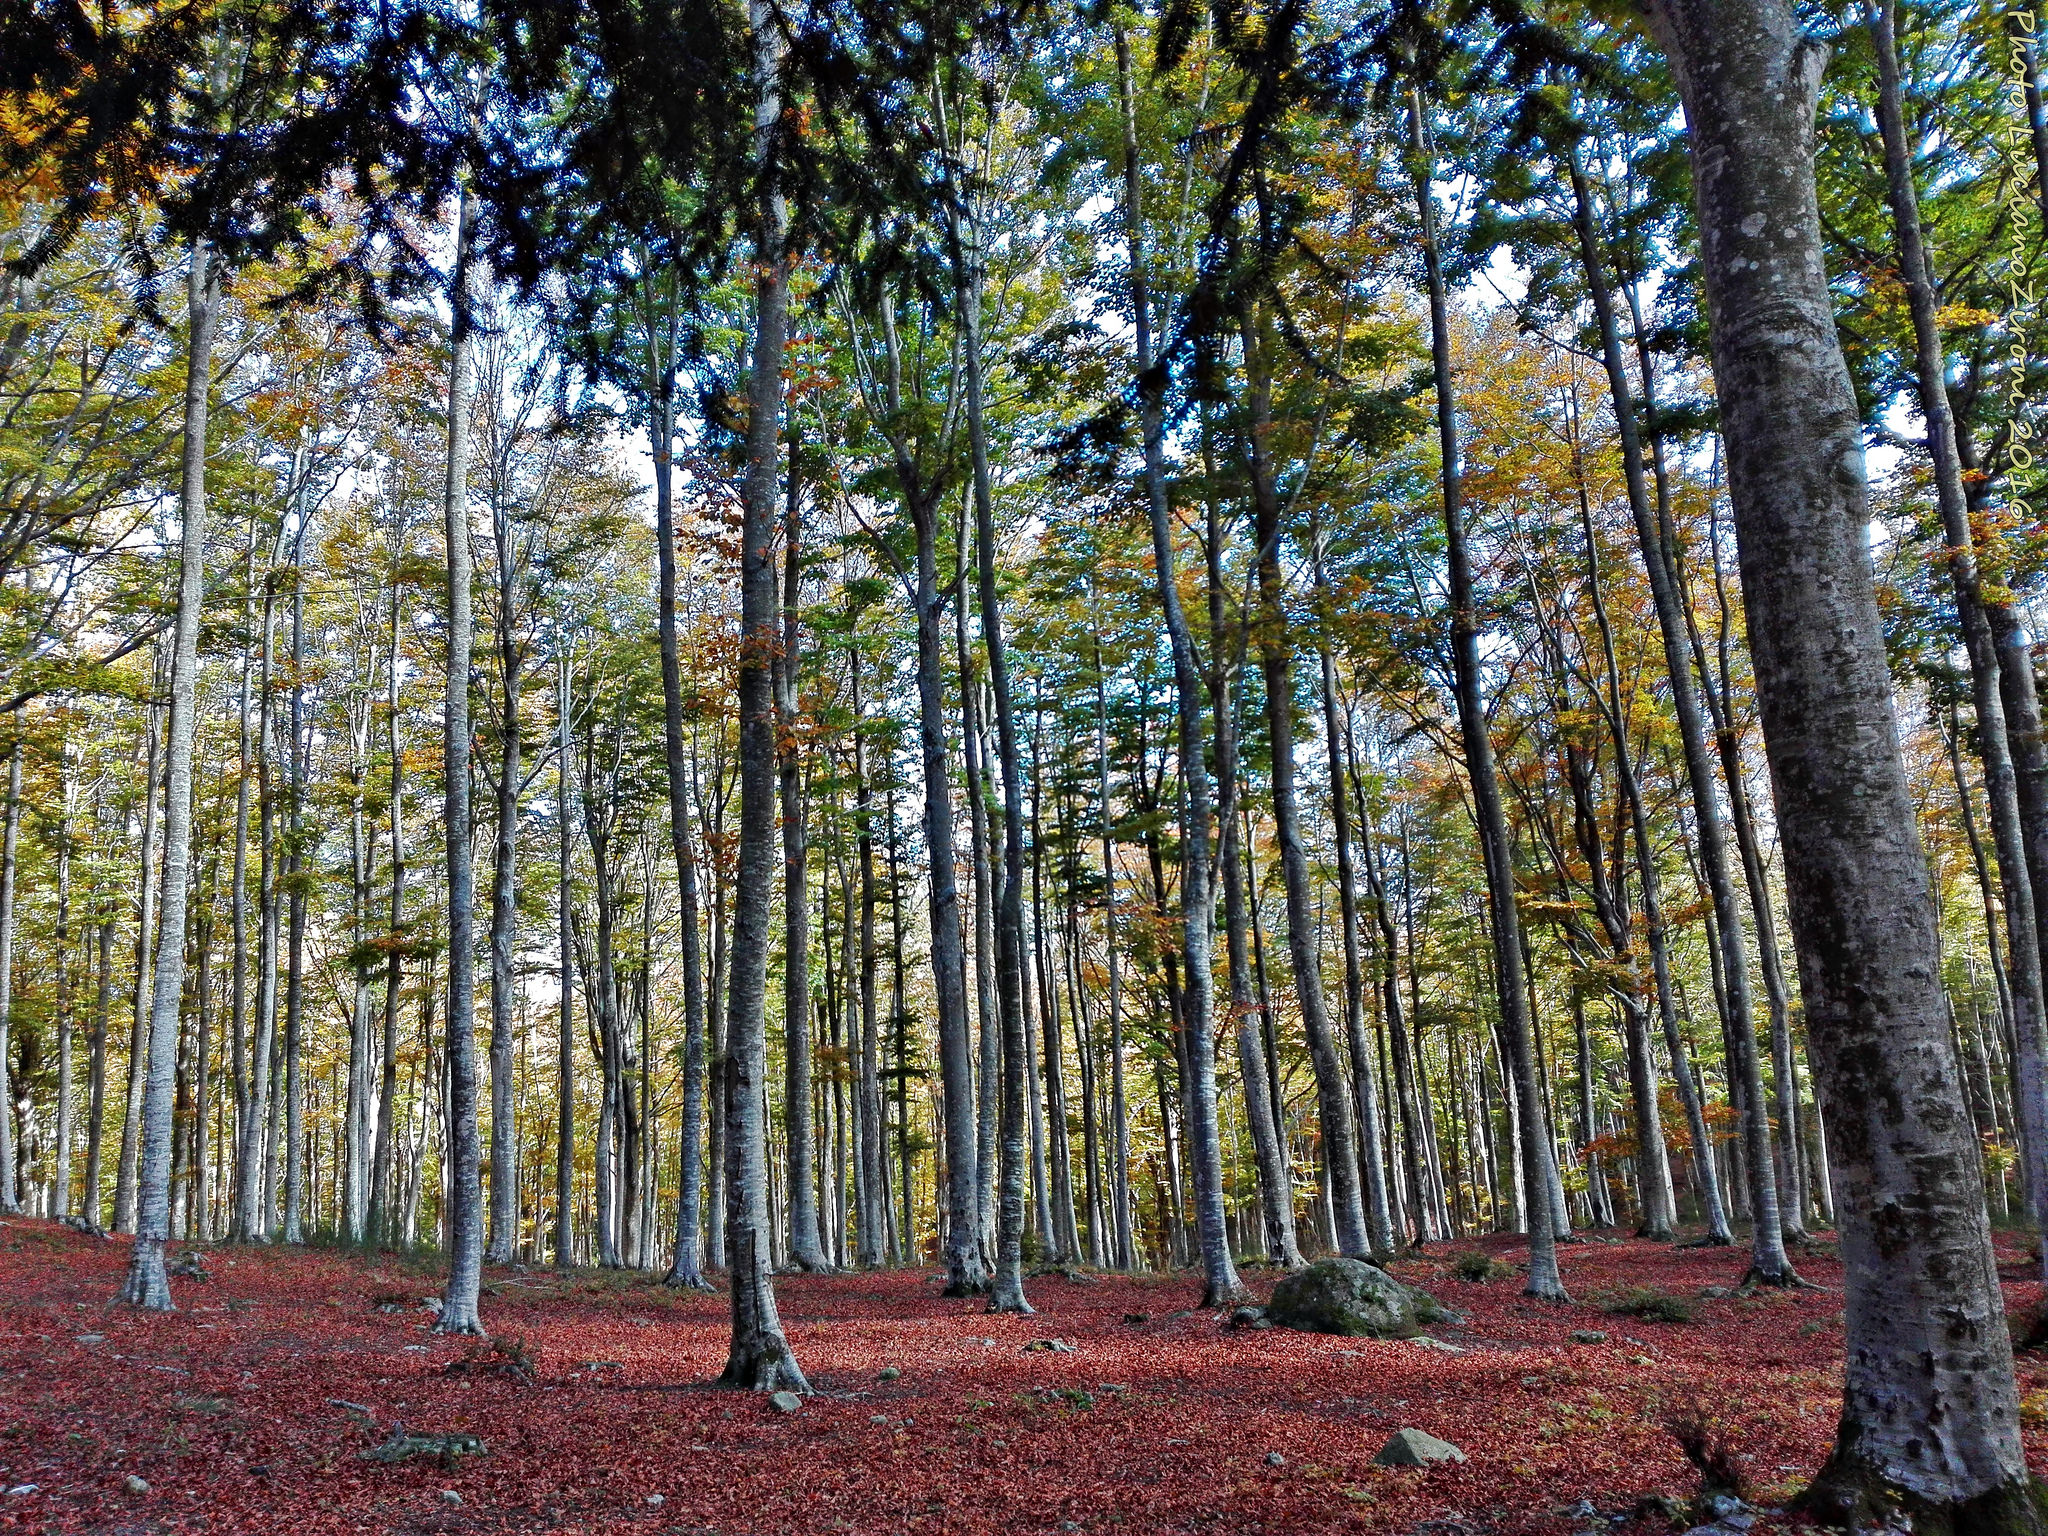 Mount Amiata Woods, Pic by Flickr User Luciano Zironi